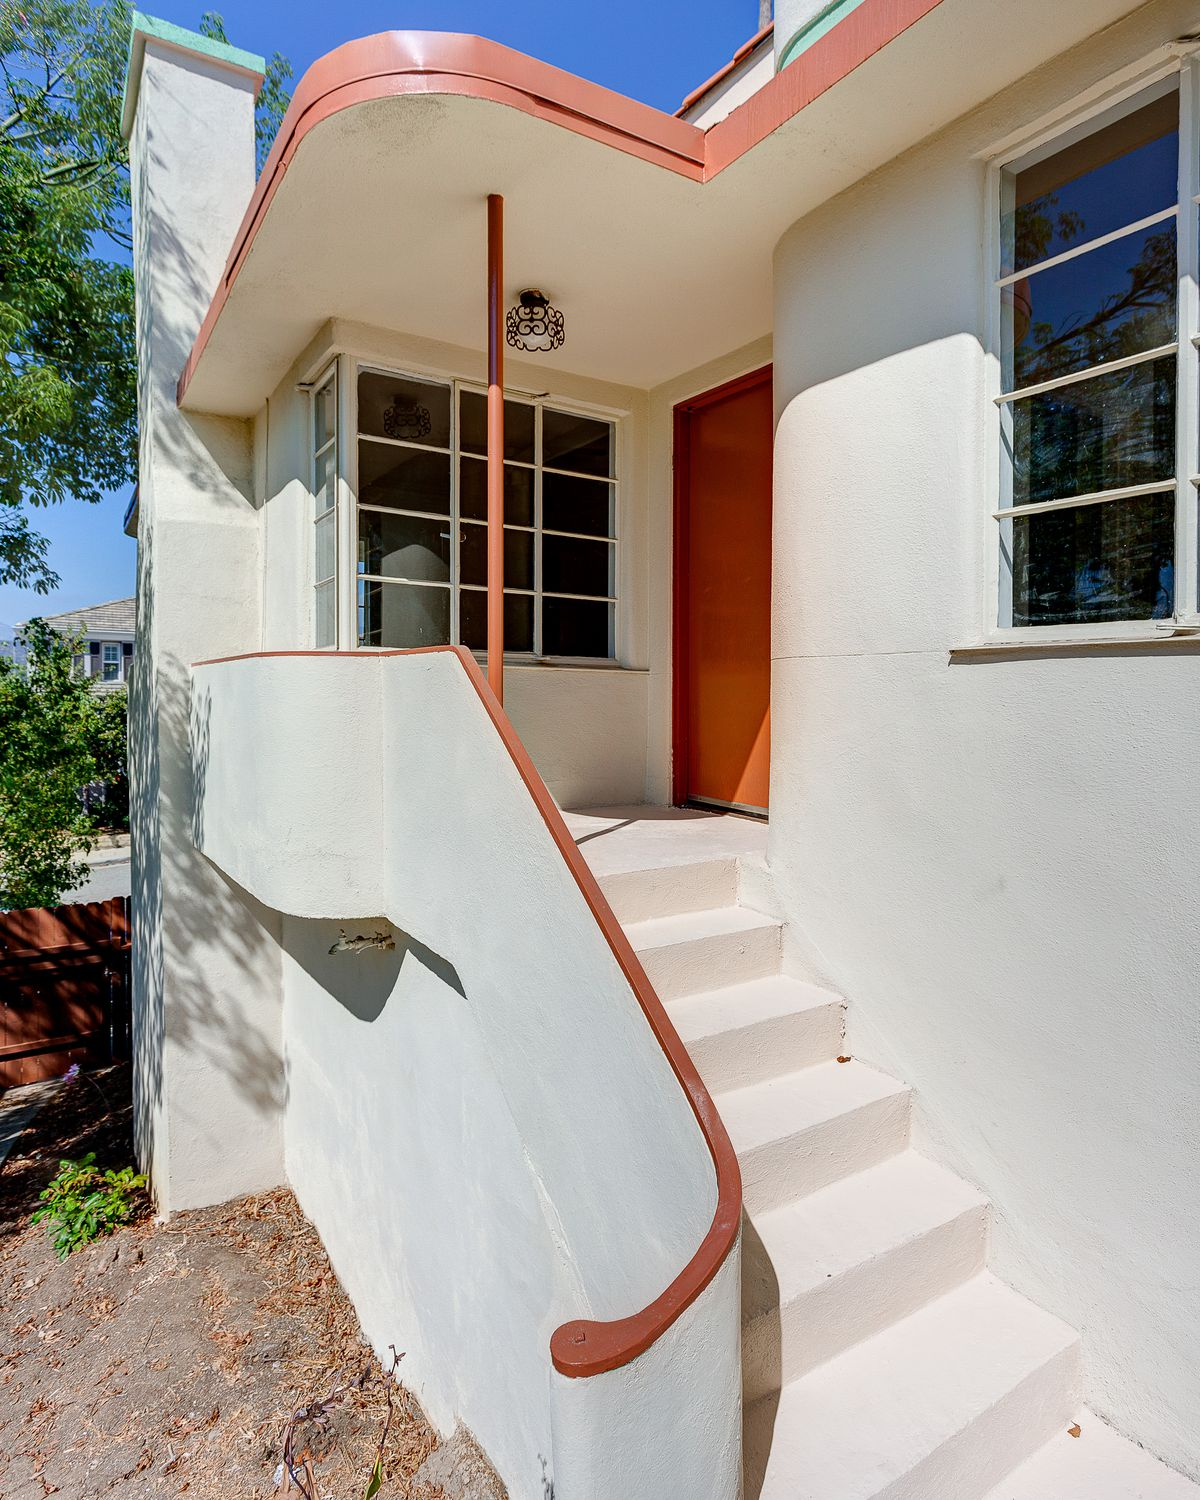 Streamline Moderne-style house in Montecito Heights asking $700K ...